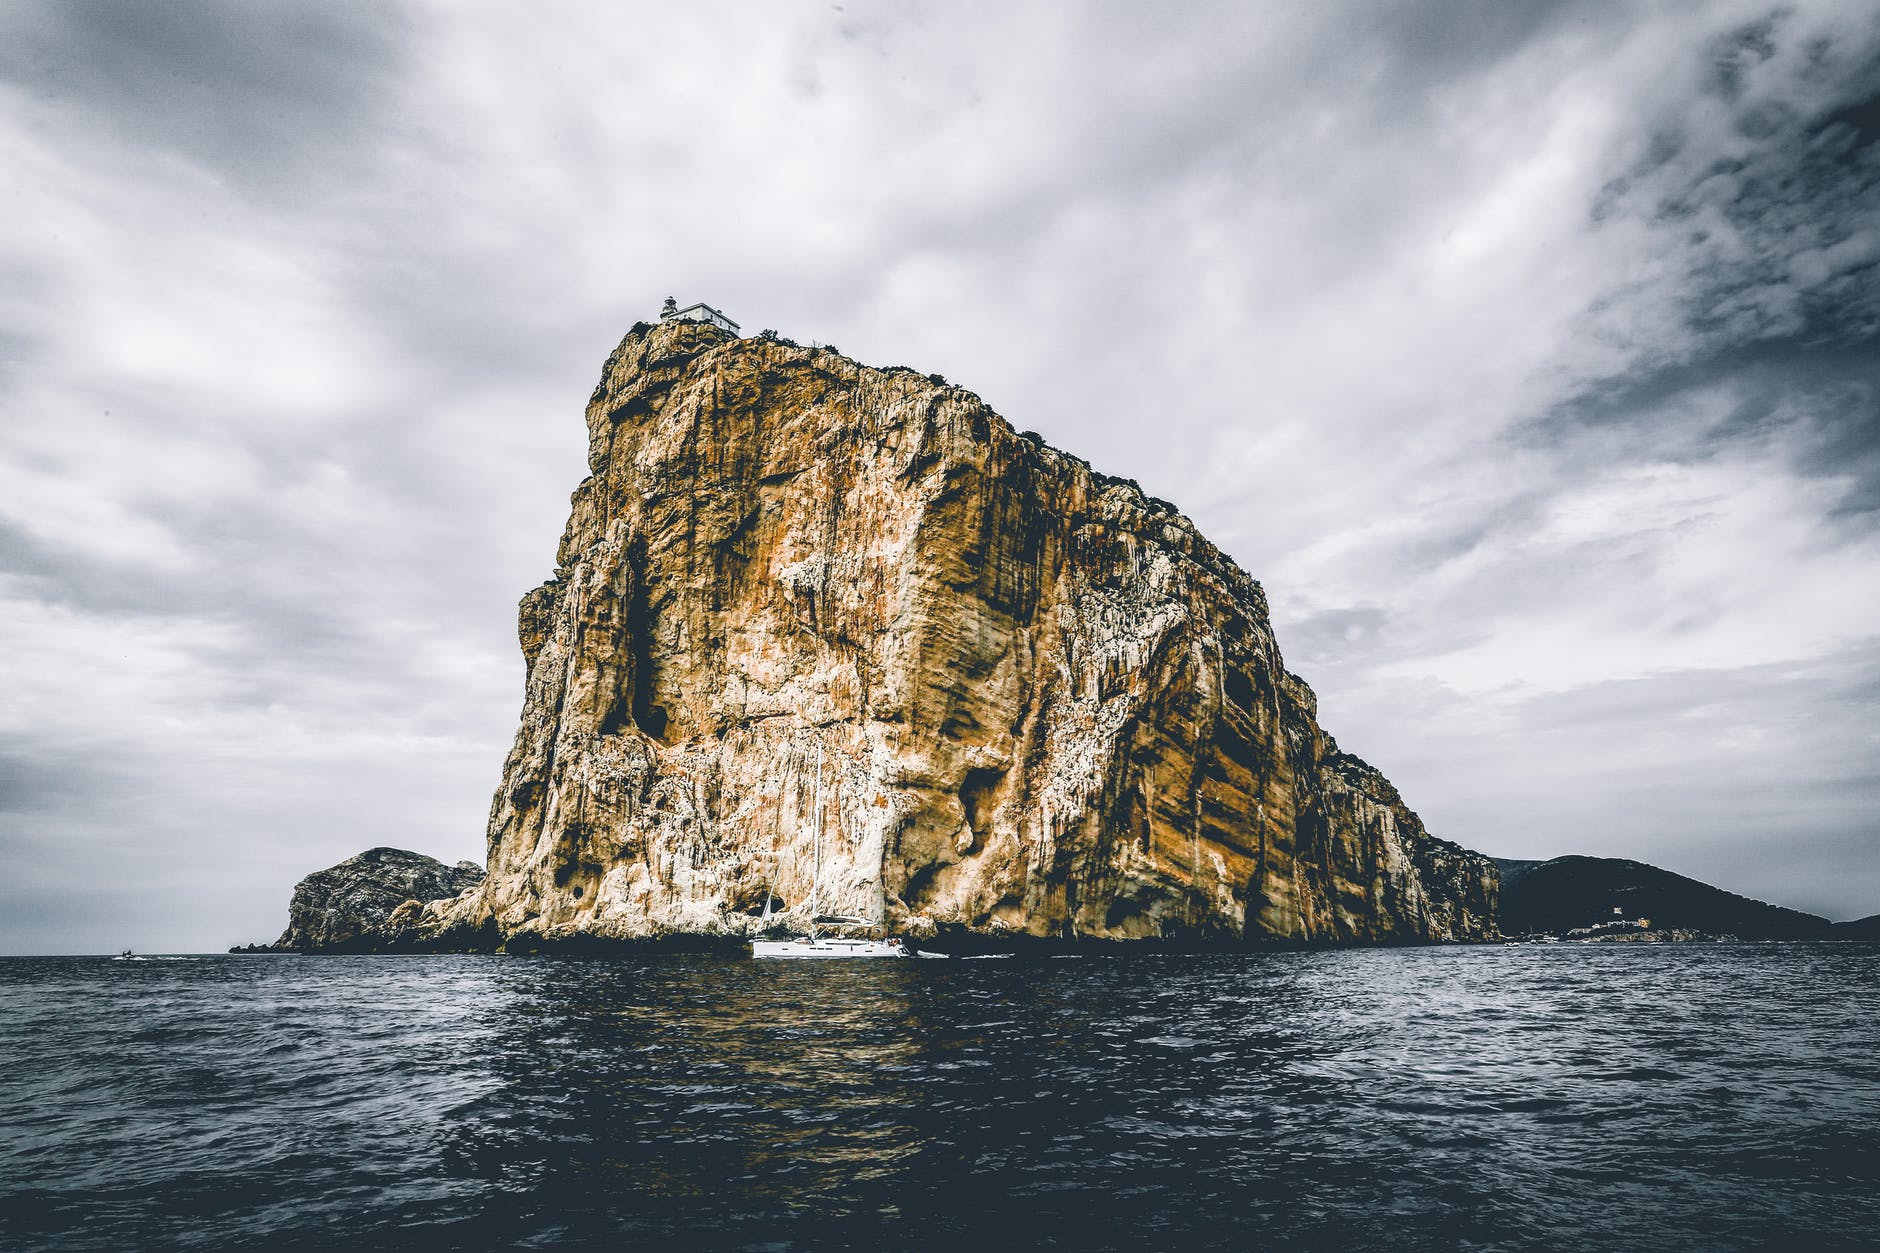 landscape photography of gray rock formation